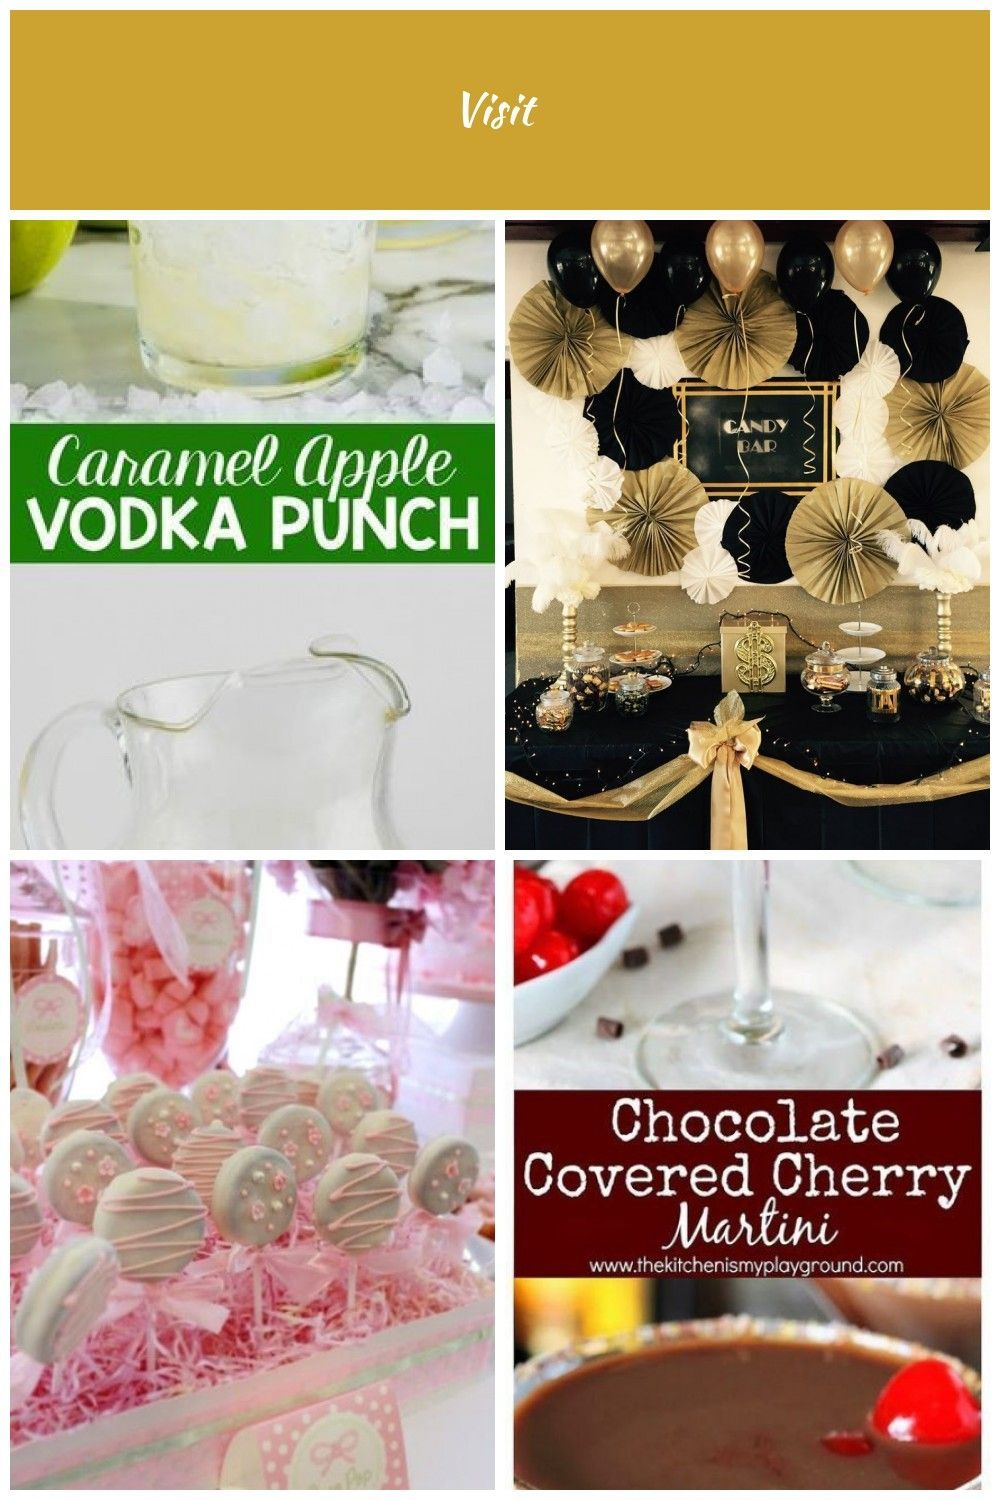 This Caramel Apple Vodka Punch only has THREE ingredients! It's so easy and the perfect party drink! #vodkapunch This Caramel Apple Vodka Punch only has THREE ingredients! It's so easy and the perfect party drink! #vodkapunch This Caramel Apple Vodka Punch only has THREE ingredients! It's so easy and the perfect party drink! #vodkapunch This Caramel Apple Vodka Punch only has THREE ingredients! It's so easy and the perfect party drink! Party Ideen Alkohol #vodkapunch This Caramel Apple Vodka Pun #vodkapunch